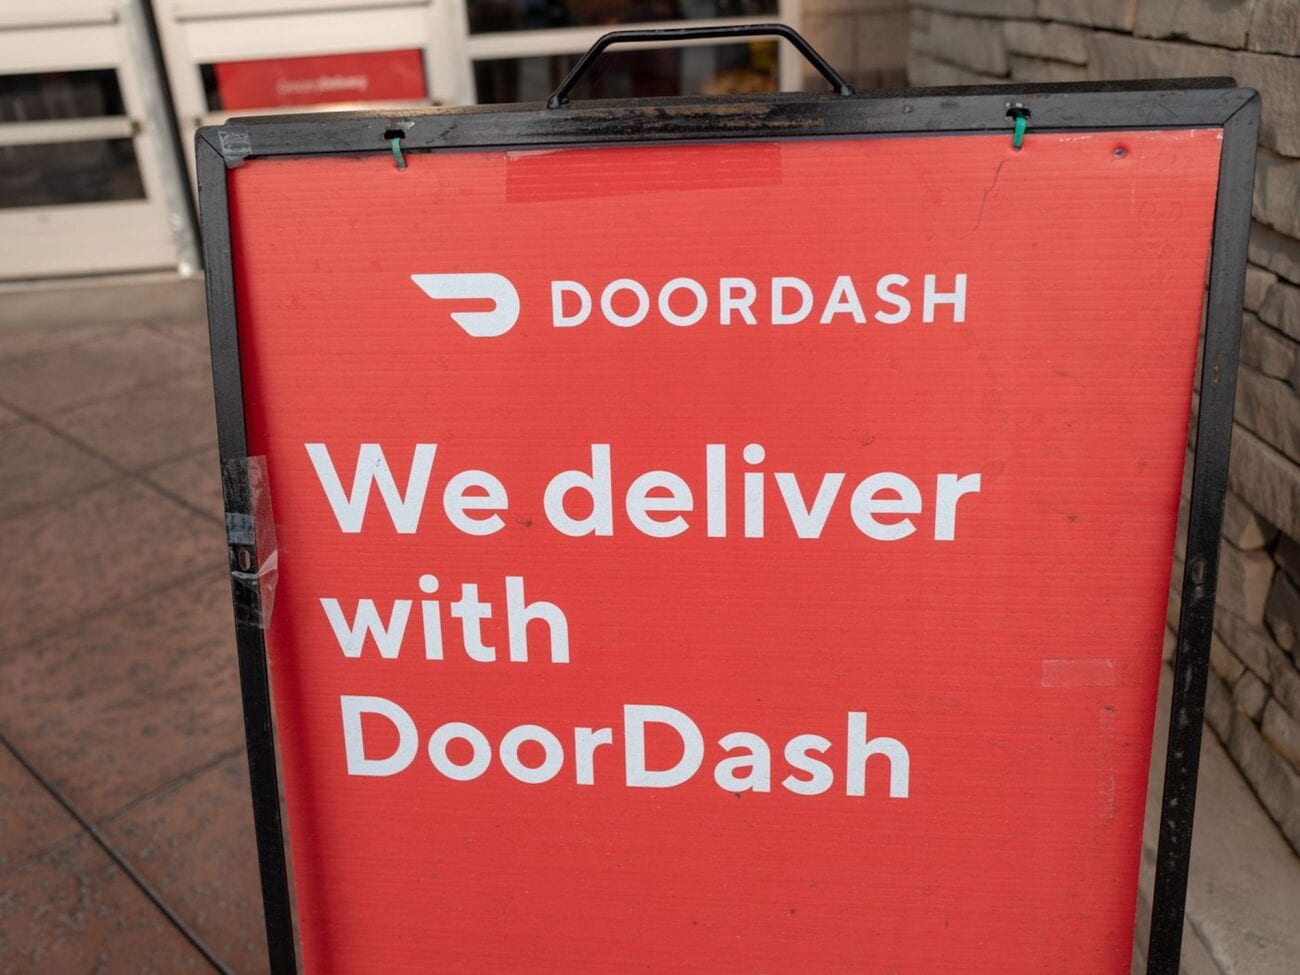 The Doordash kidnapping highlights how gig workers cannot afford the basic necessities. Learn why working for Doordash is the worst.